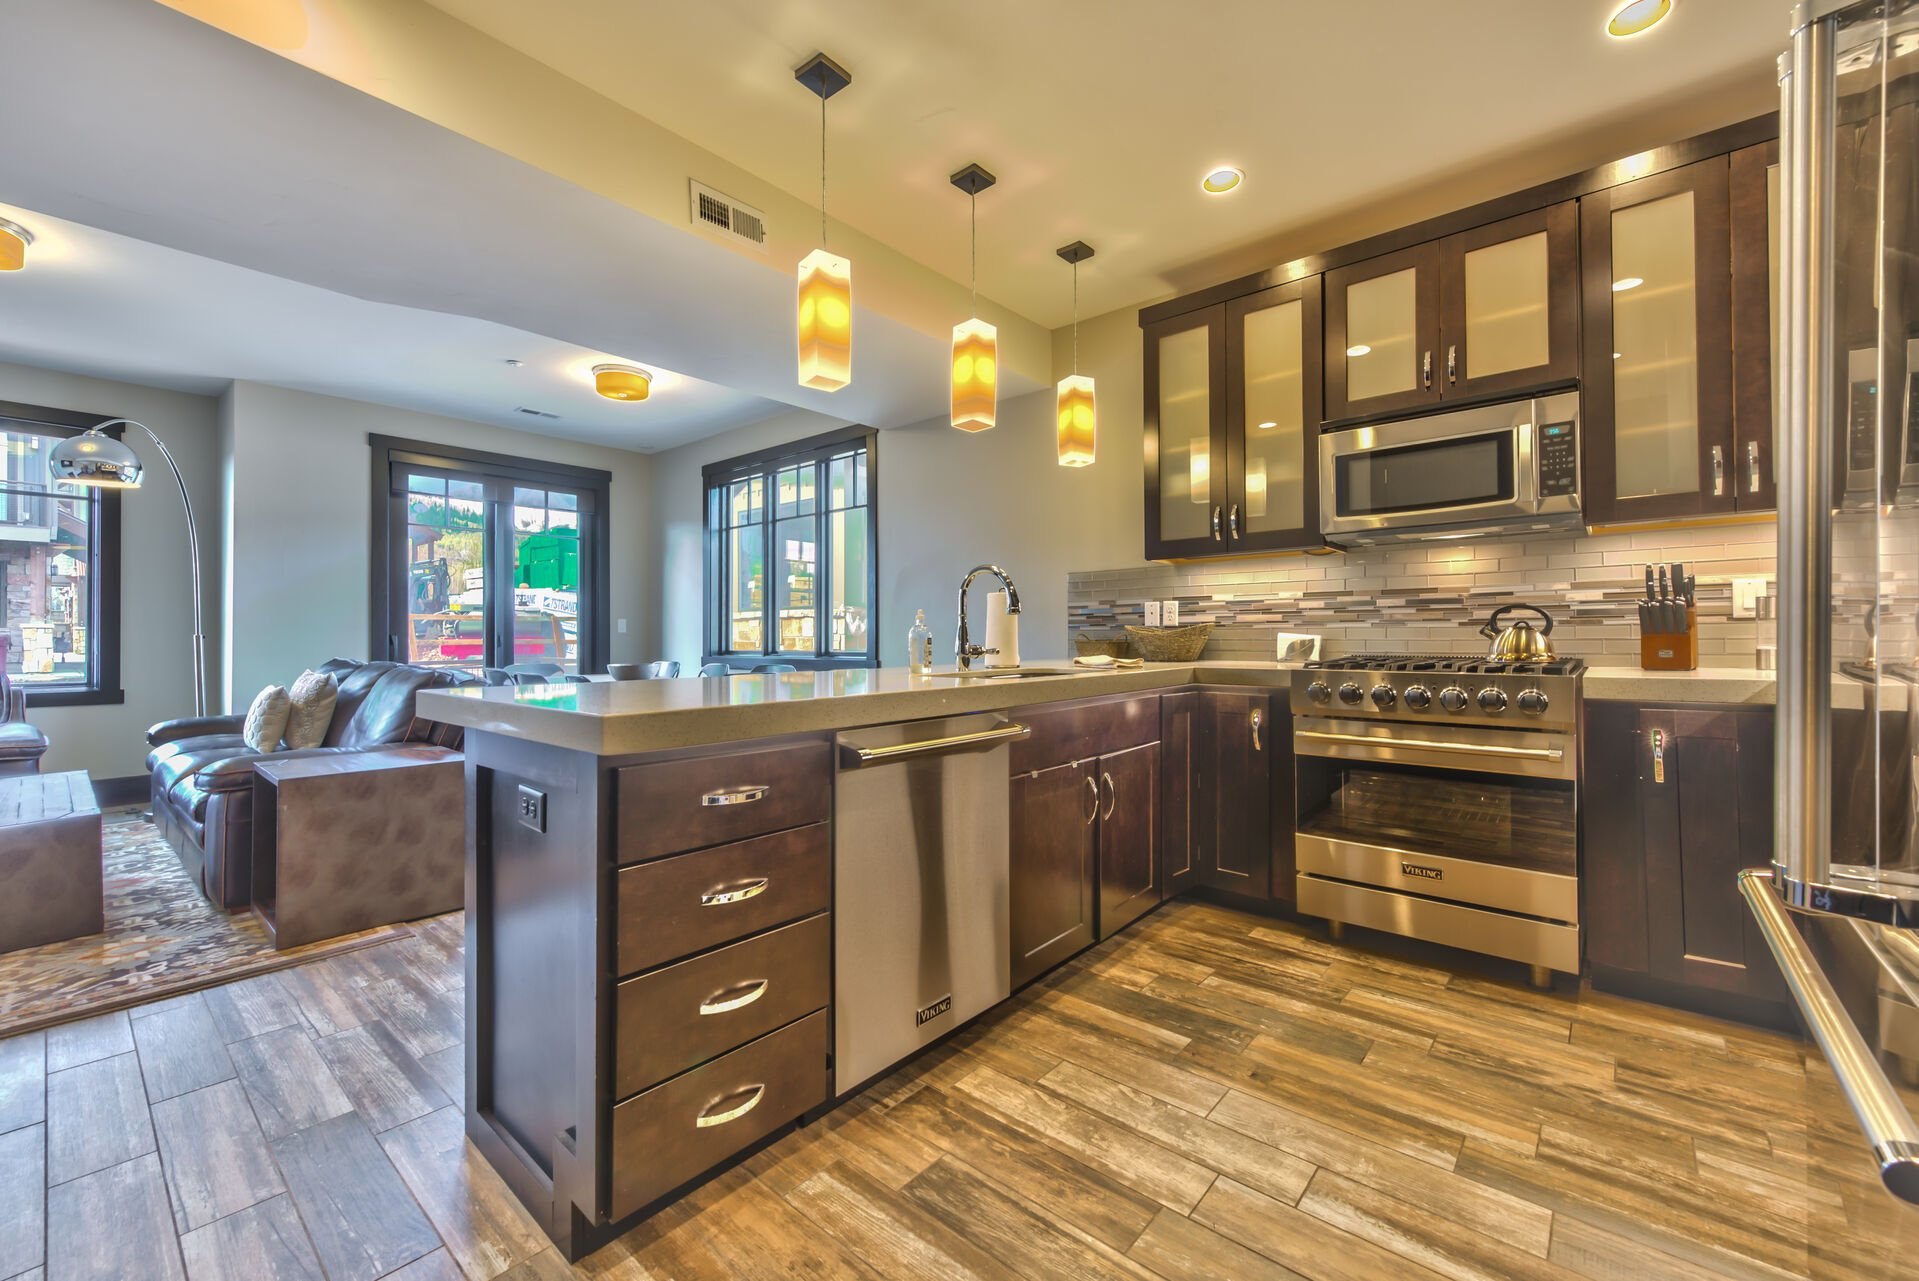 Fully Equipped Kitchen with Stainless Steel Appliances, a 6-Burner Viking Gas Range, Granite Countertops, Bar Seating for 4, Dining Area, and a Comfortable Living Room